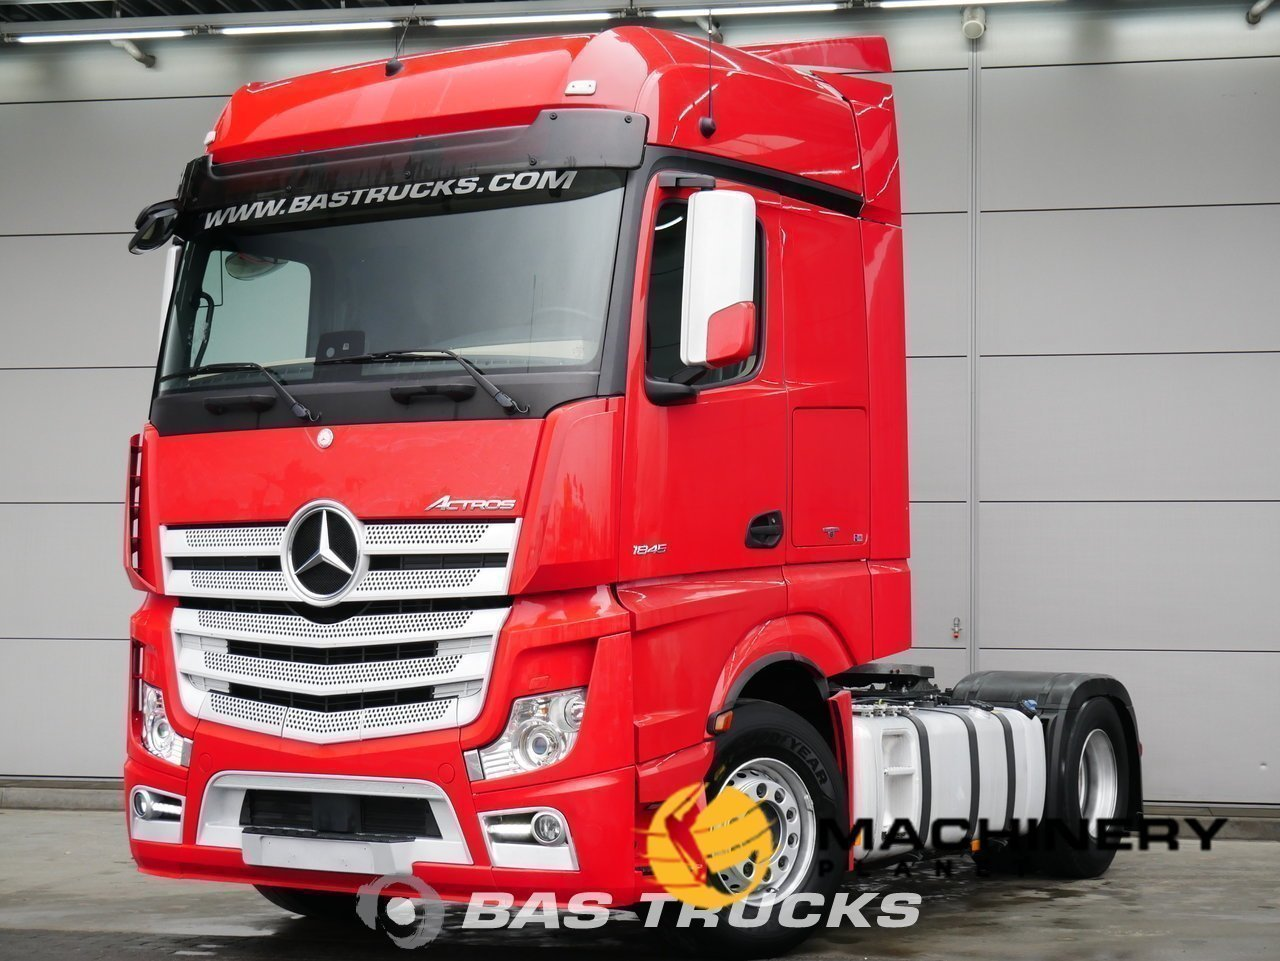 Used-Tractorhead-Mercedes-Actros-1845-LS-4X2-2015_146790_1-1554203155211_5ca34213339d4-1.jpg